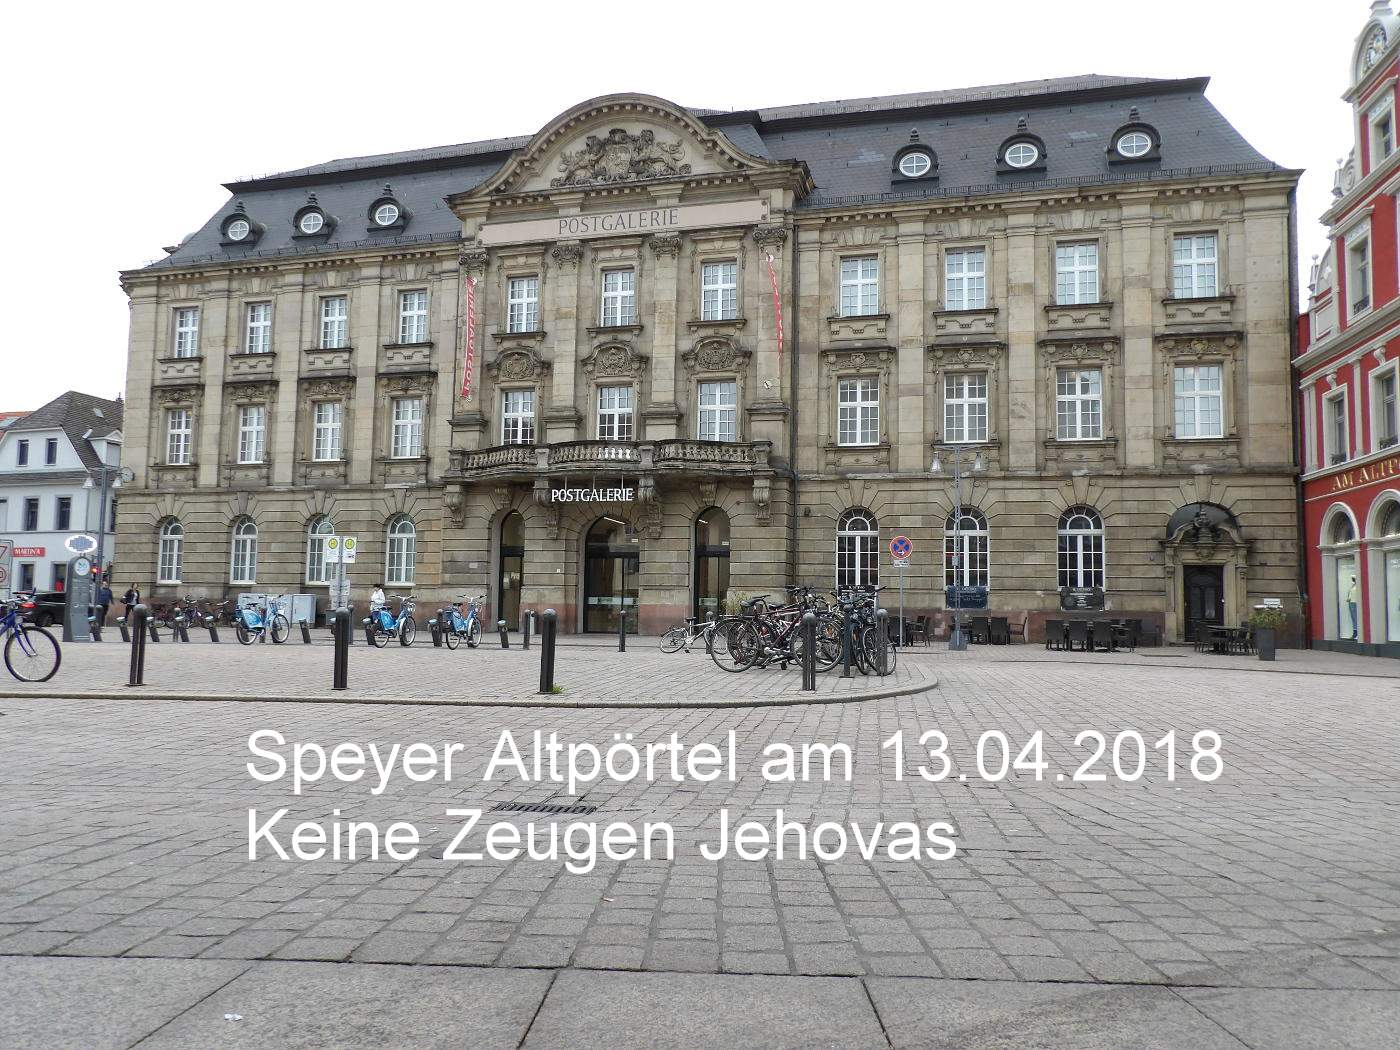 Jehovah's Witnesses have learned that they no longer have to show up at the Altpoertel in Speyer on Fridays